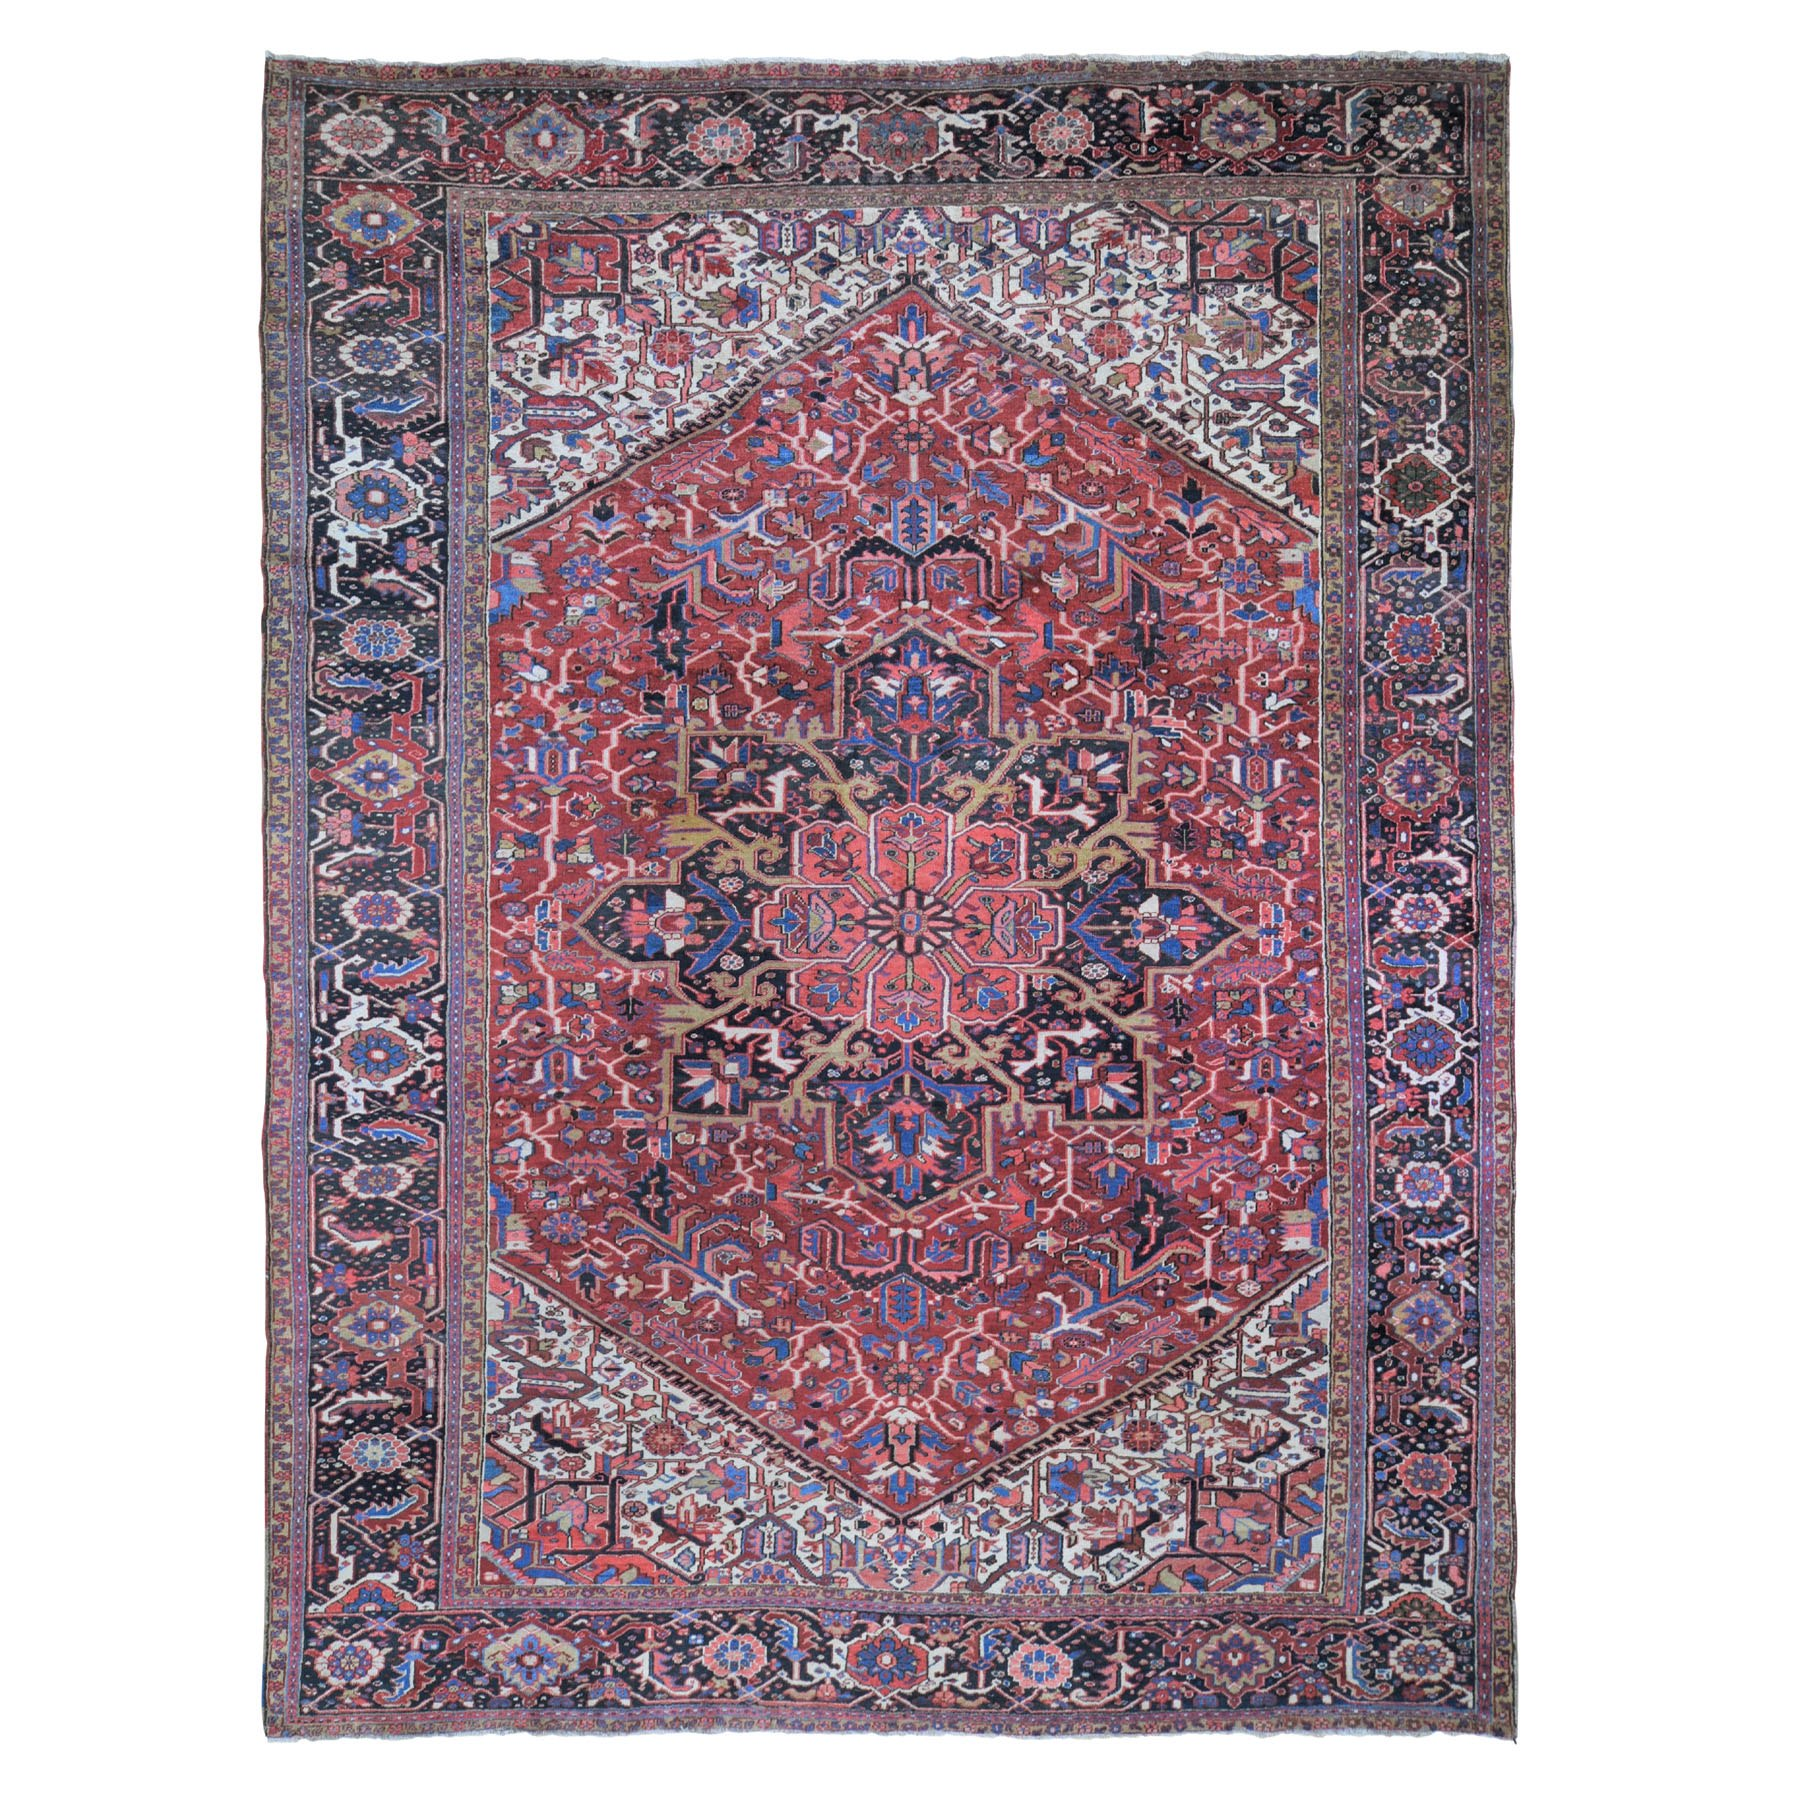 Antique Collection Hand Knotted Red Rug No: 199994